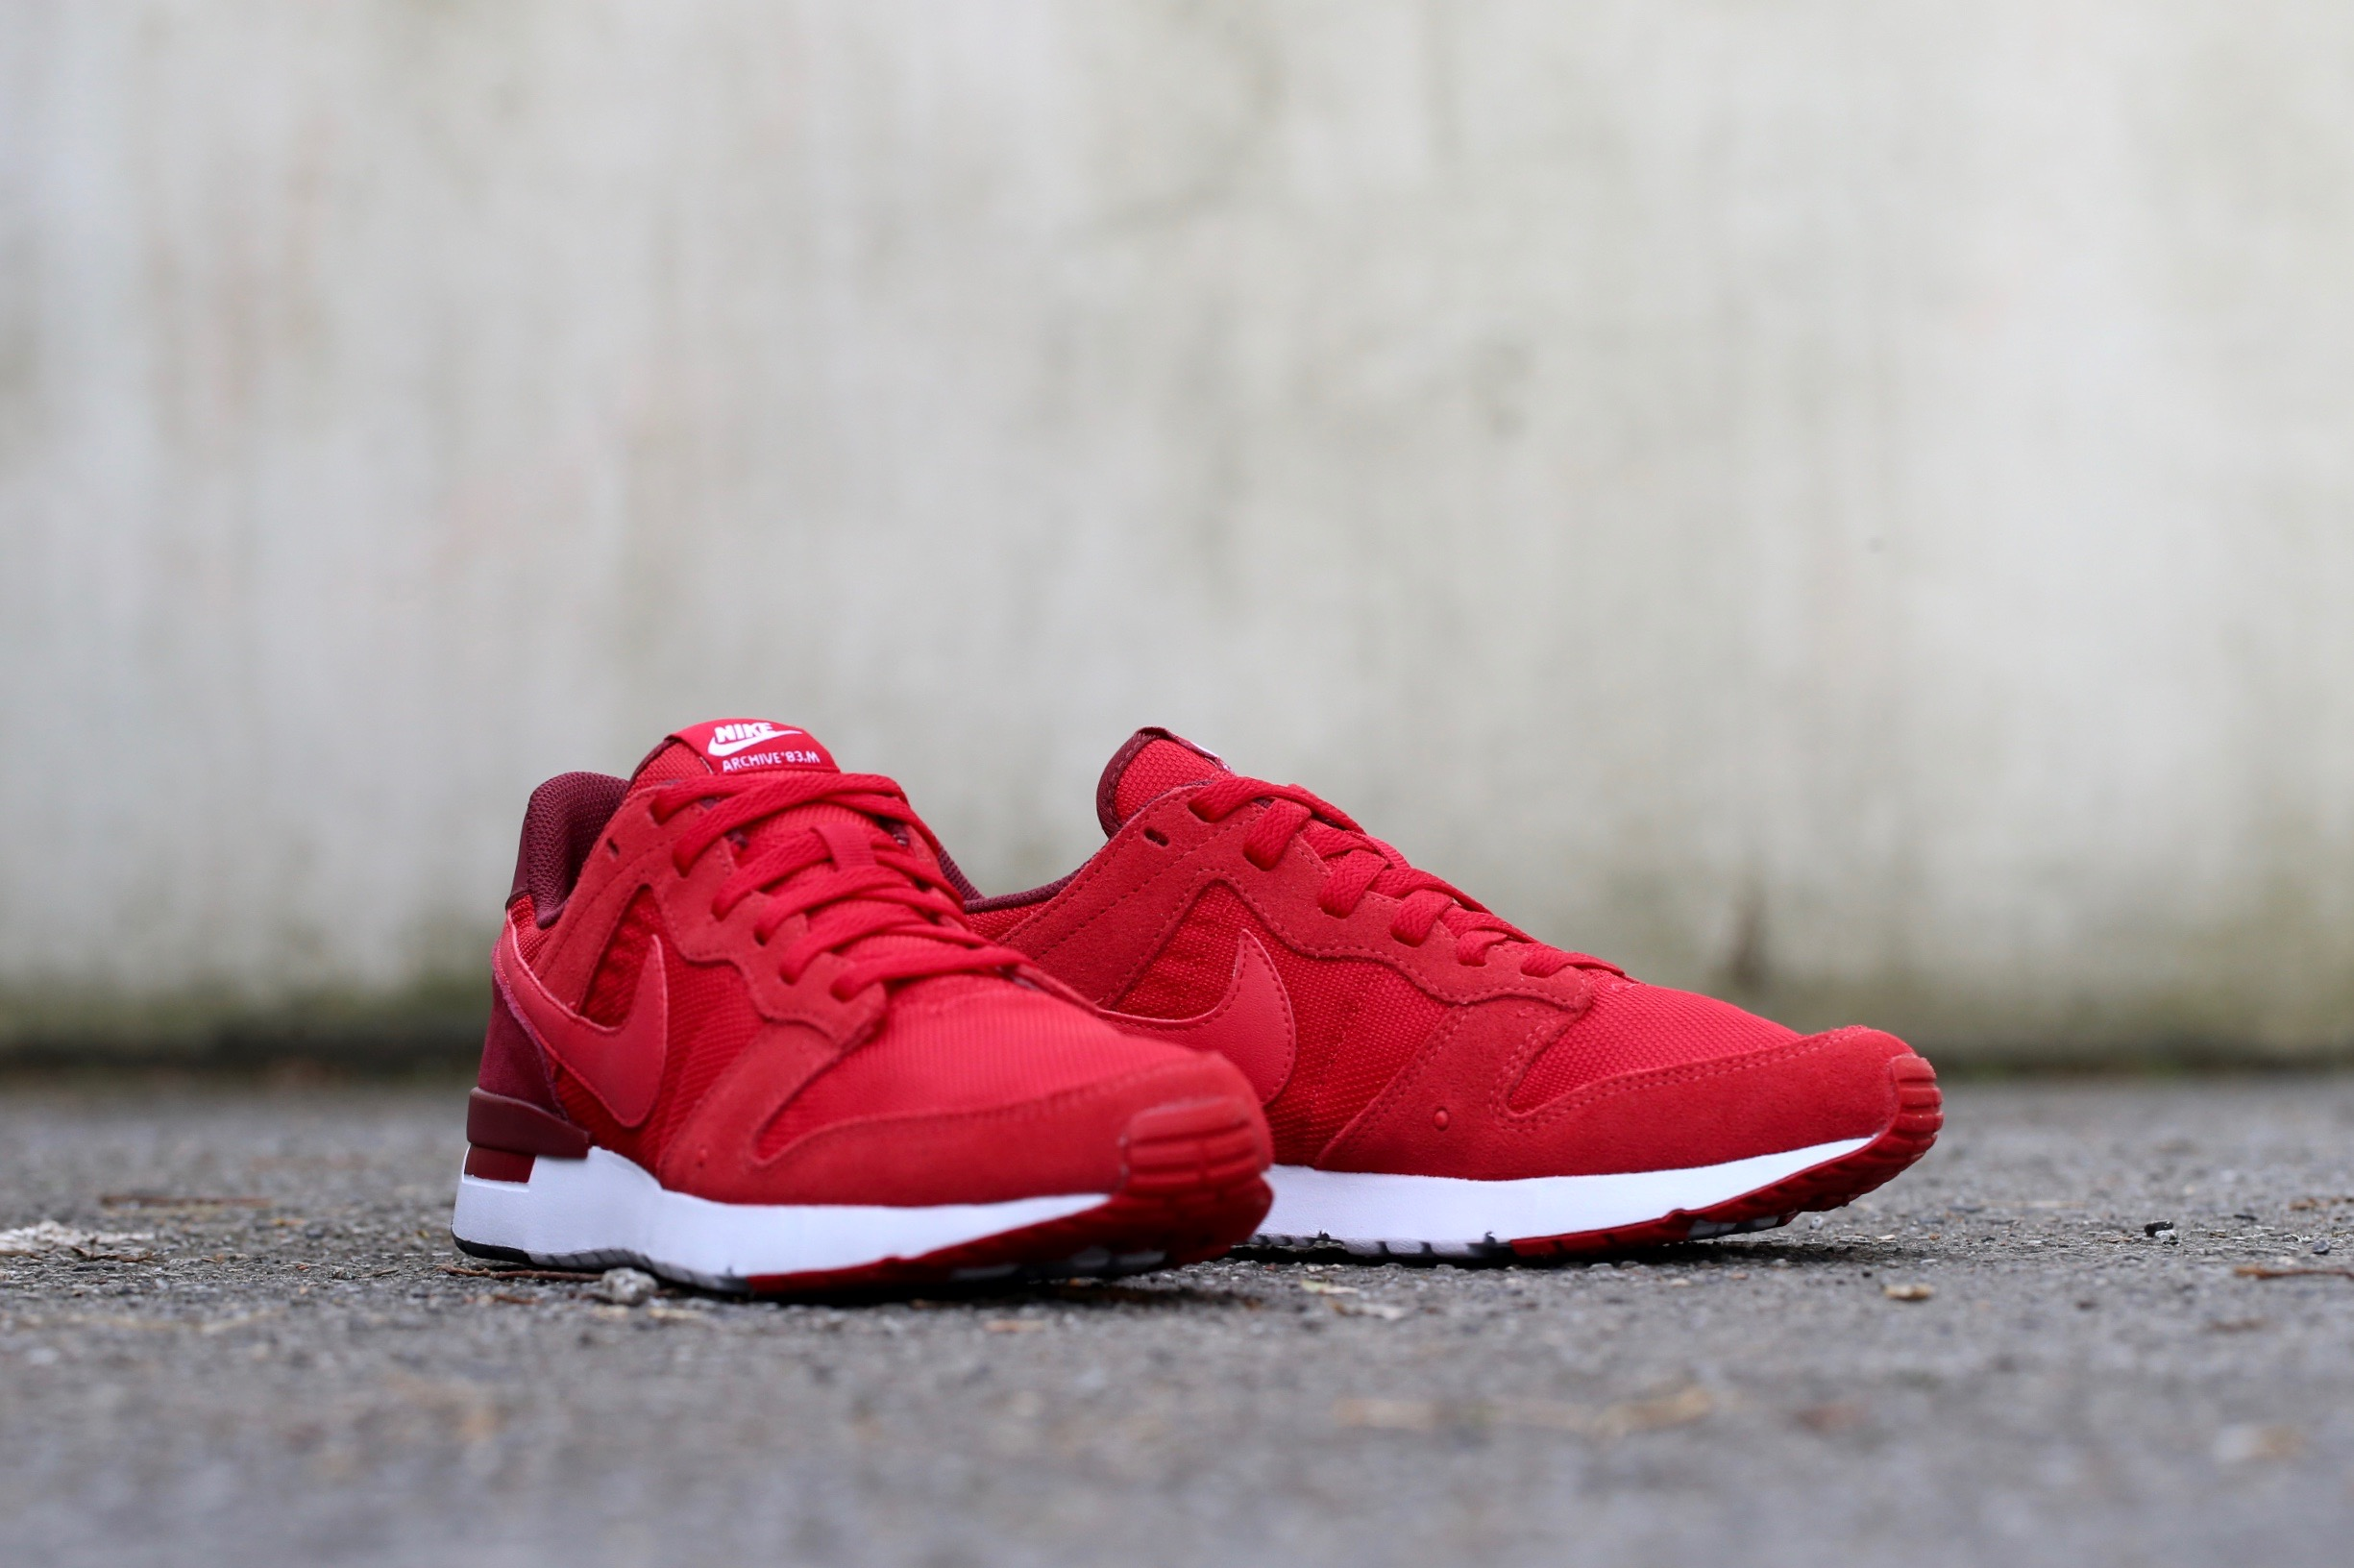 wholesale dealer 50cd4 bd693 Nike Archive 83.M – Gym Red   Team Red   Prime Red – STASP